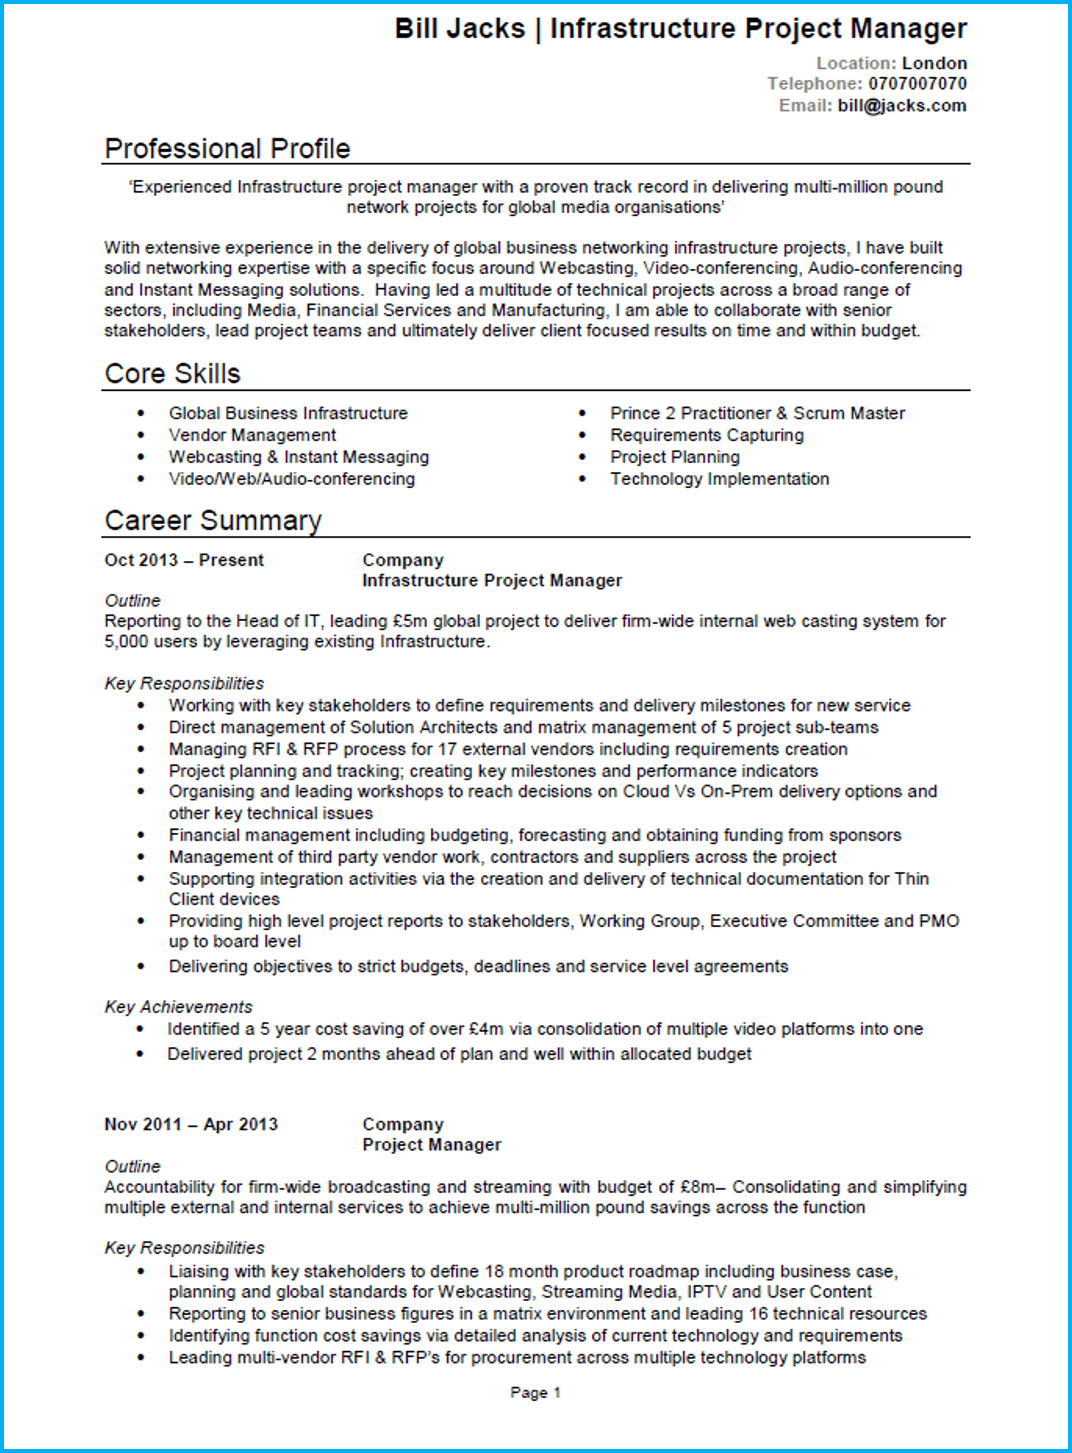 Project manager CV 1